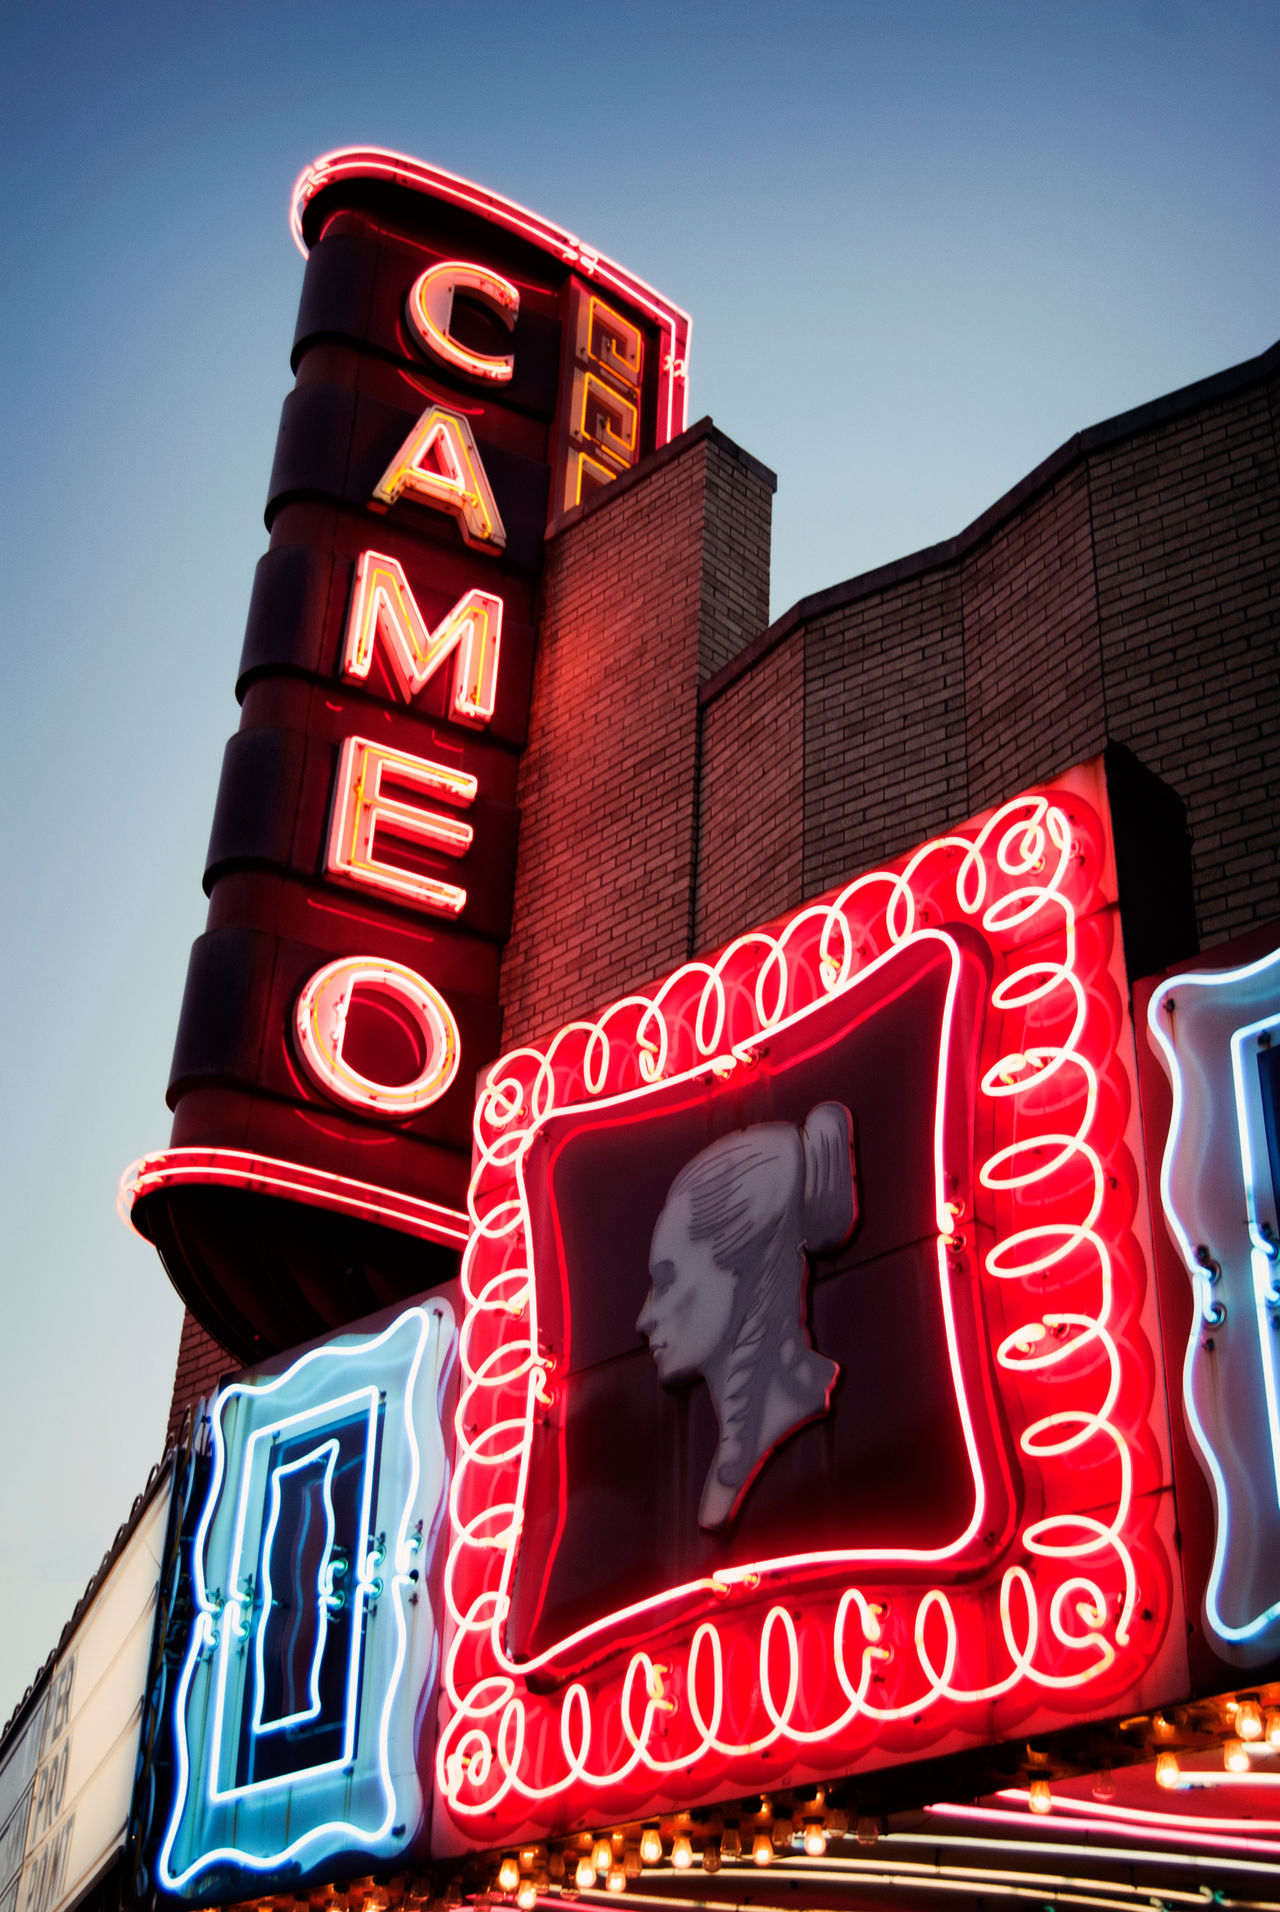 Architecture Arts Cameo  City Colorful Day Illuminated Light Lights And Shadows Low Angle View Movies Neon Neons No People Outdoors Red Retail  Sky Text Theatre